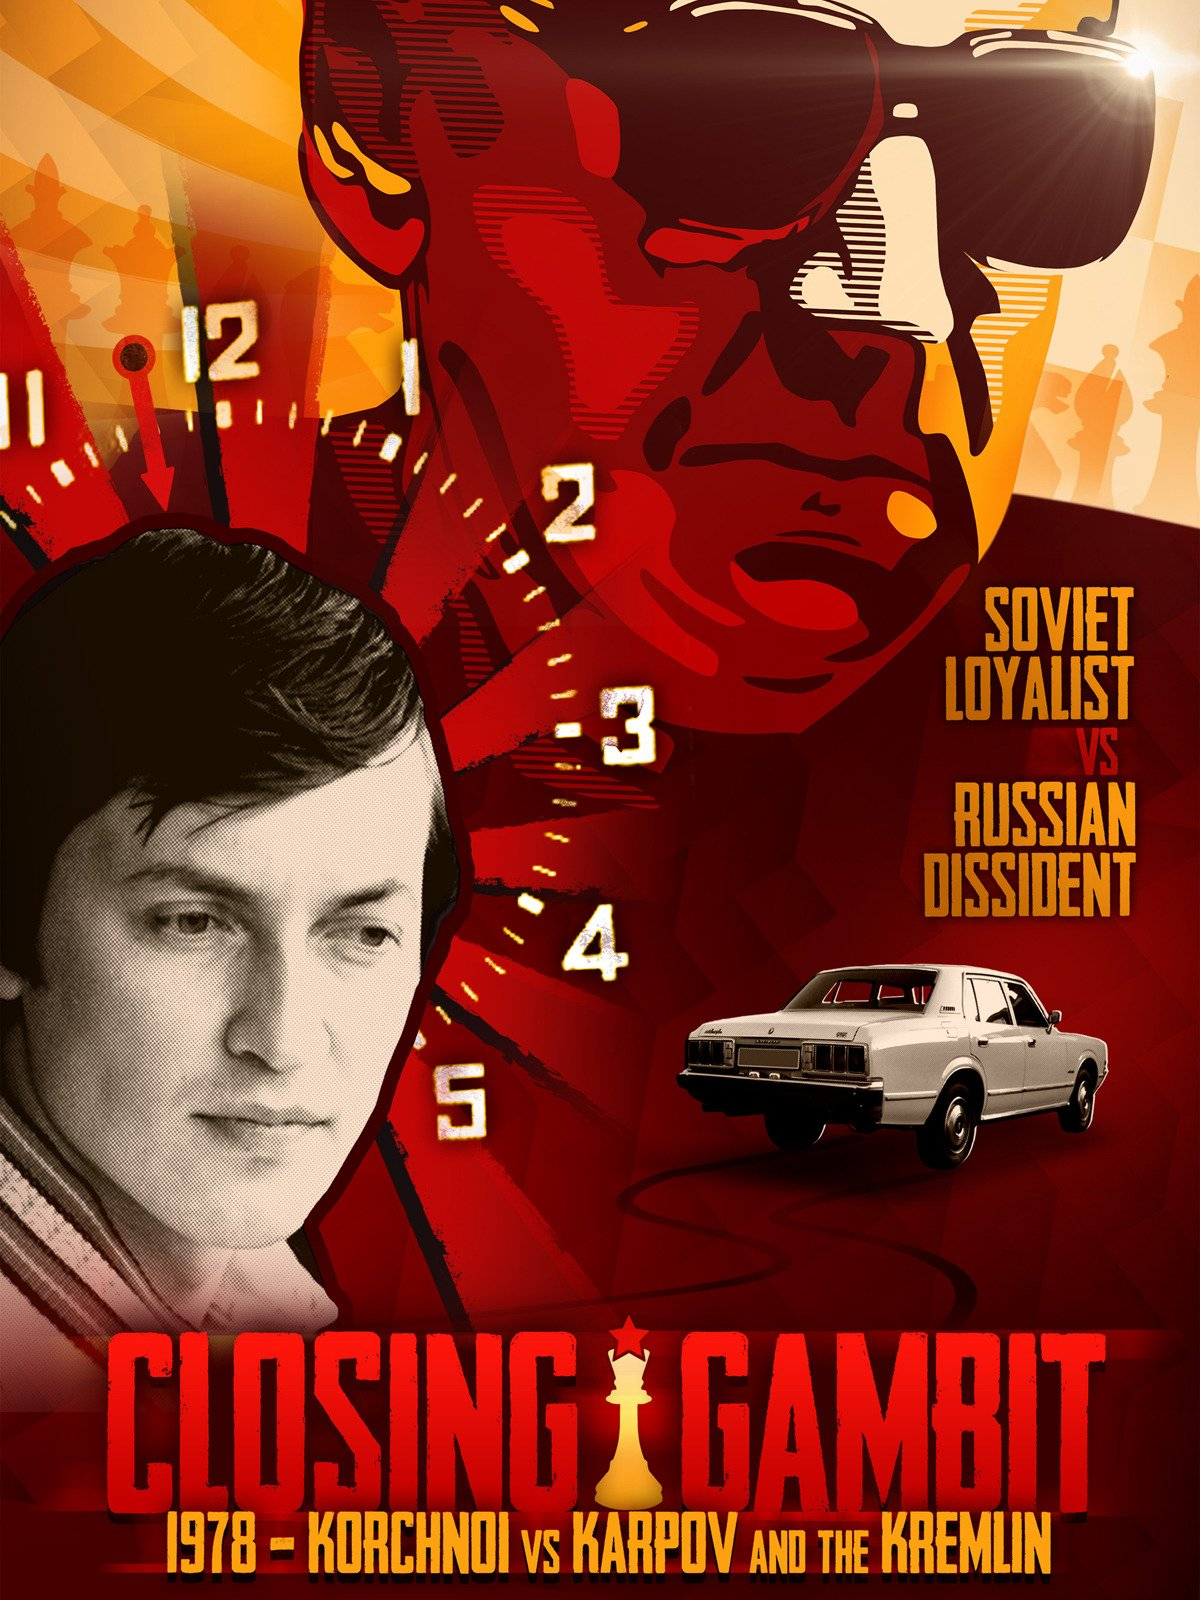 Closing Gambit: 1978 Korchnoi versus Karpov and the Kremlin